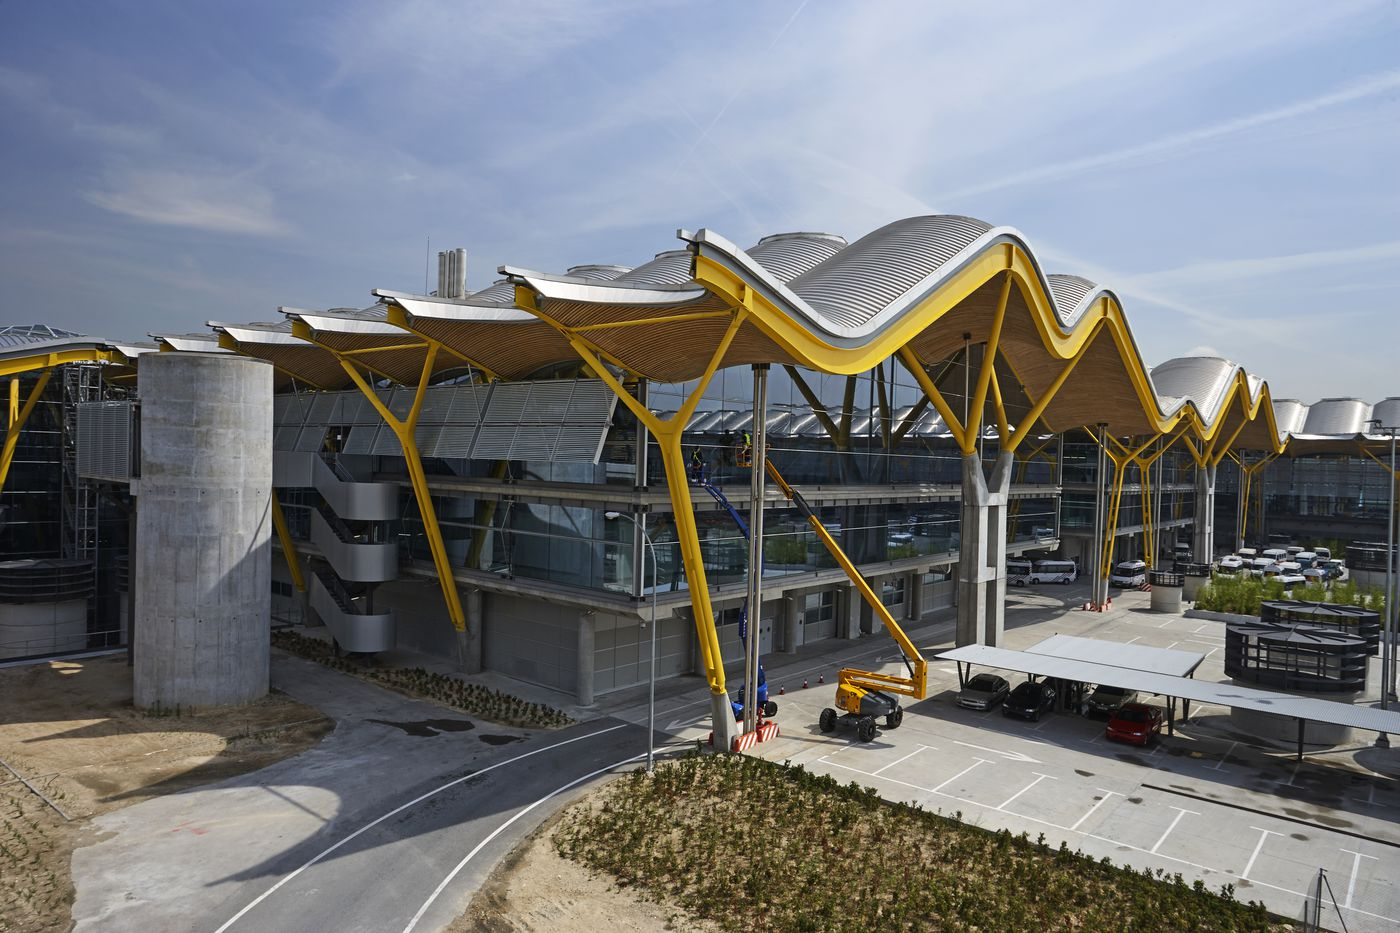 Airport architecture: The 14 most beautiful airports in the